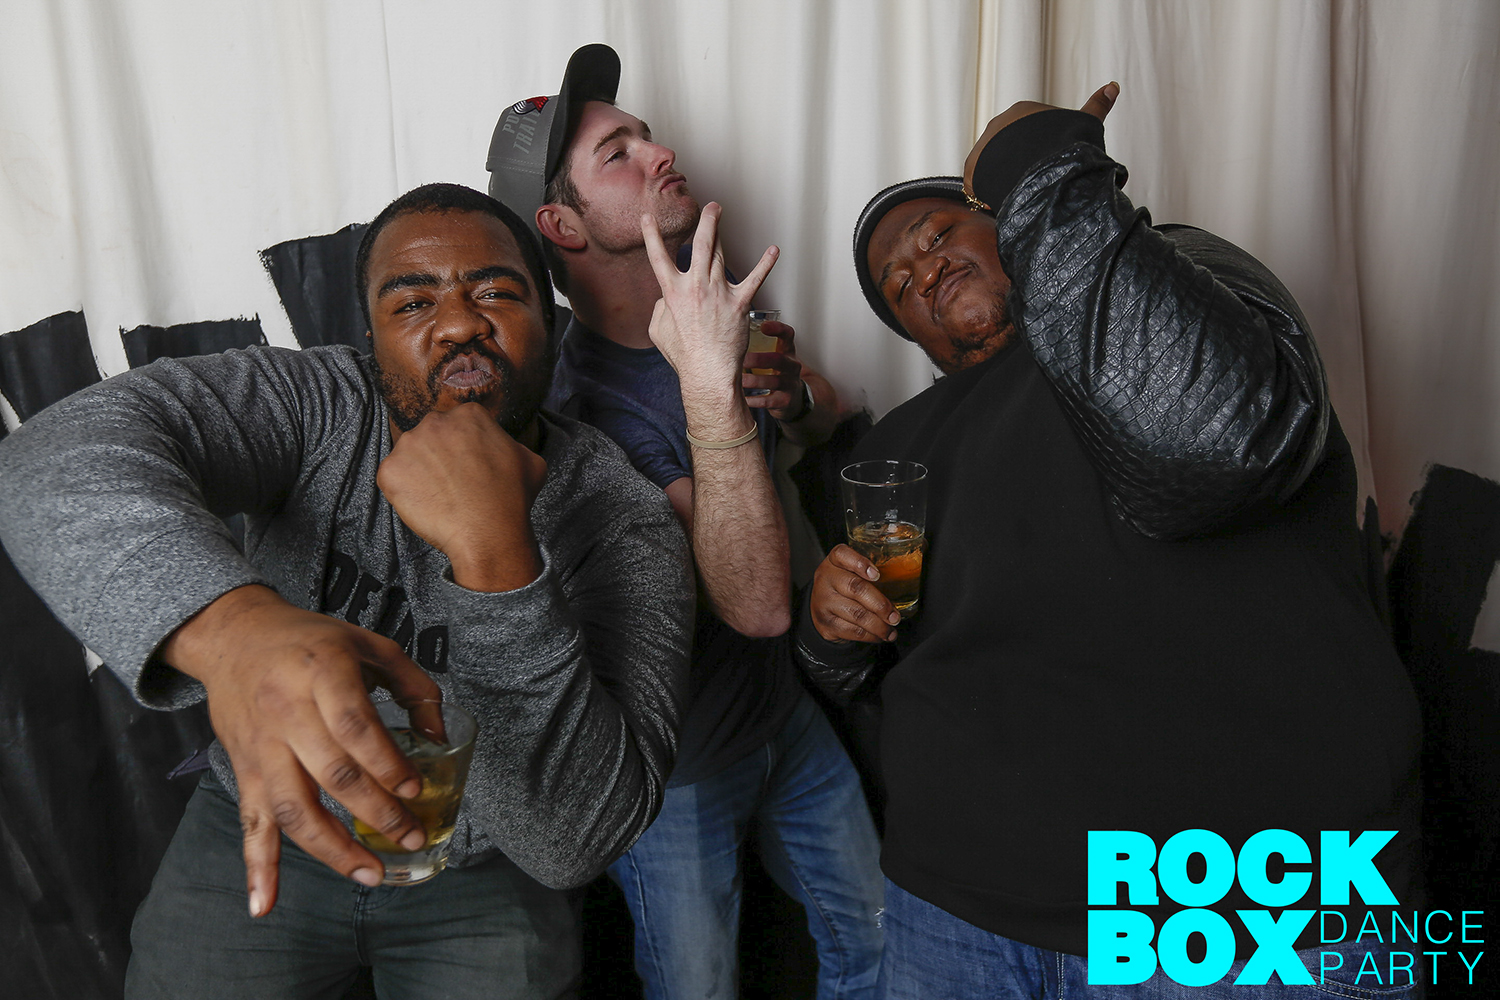 Rock box feb 2015-0160.jpg